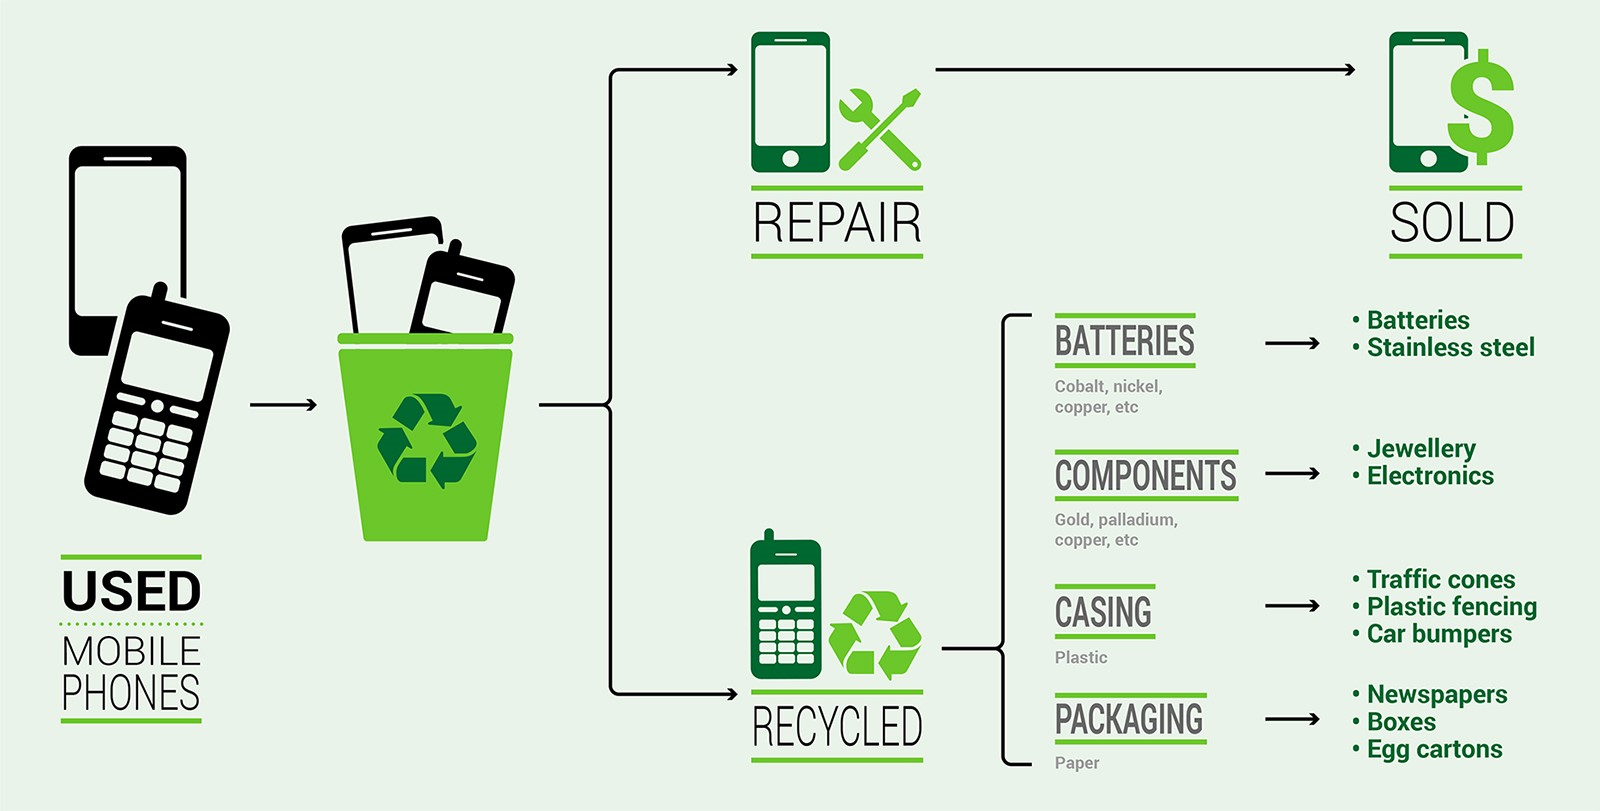 Mobile phones e waste ambassador report our actions tunza eco generation - Recycling mobel ...